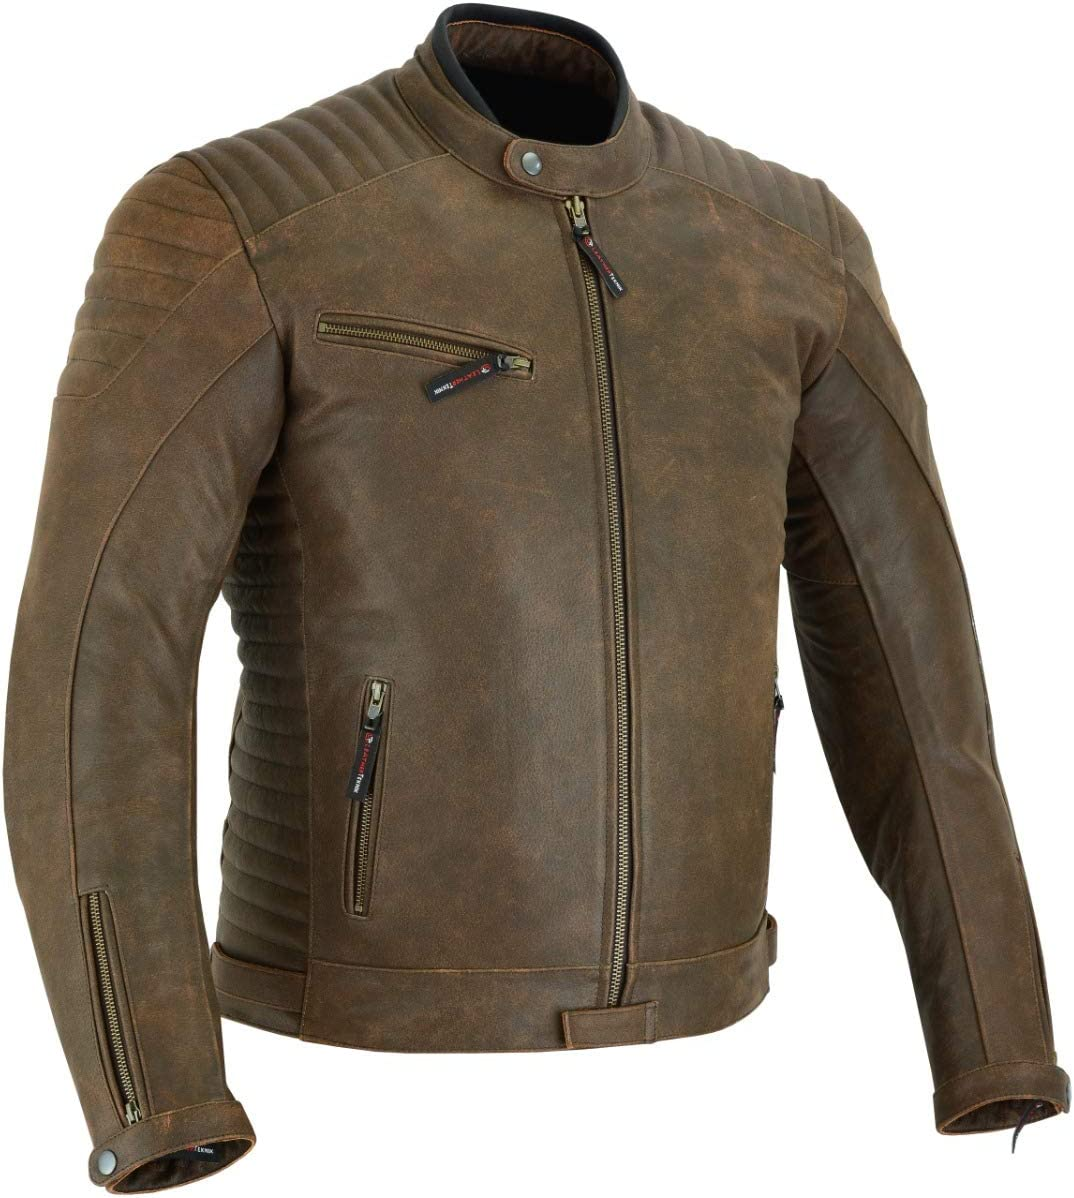 MOTORCYCLE LEATHER JACKET FOR MEN WITH ARMOR BIKERS RIDING PROTECTIVE ARMORED VINTAGE DISTRESSED JACKET BROWN DL-2812A M